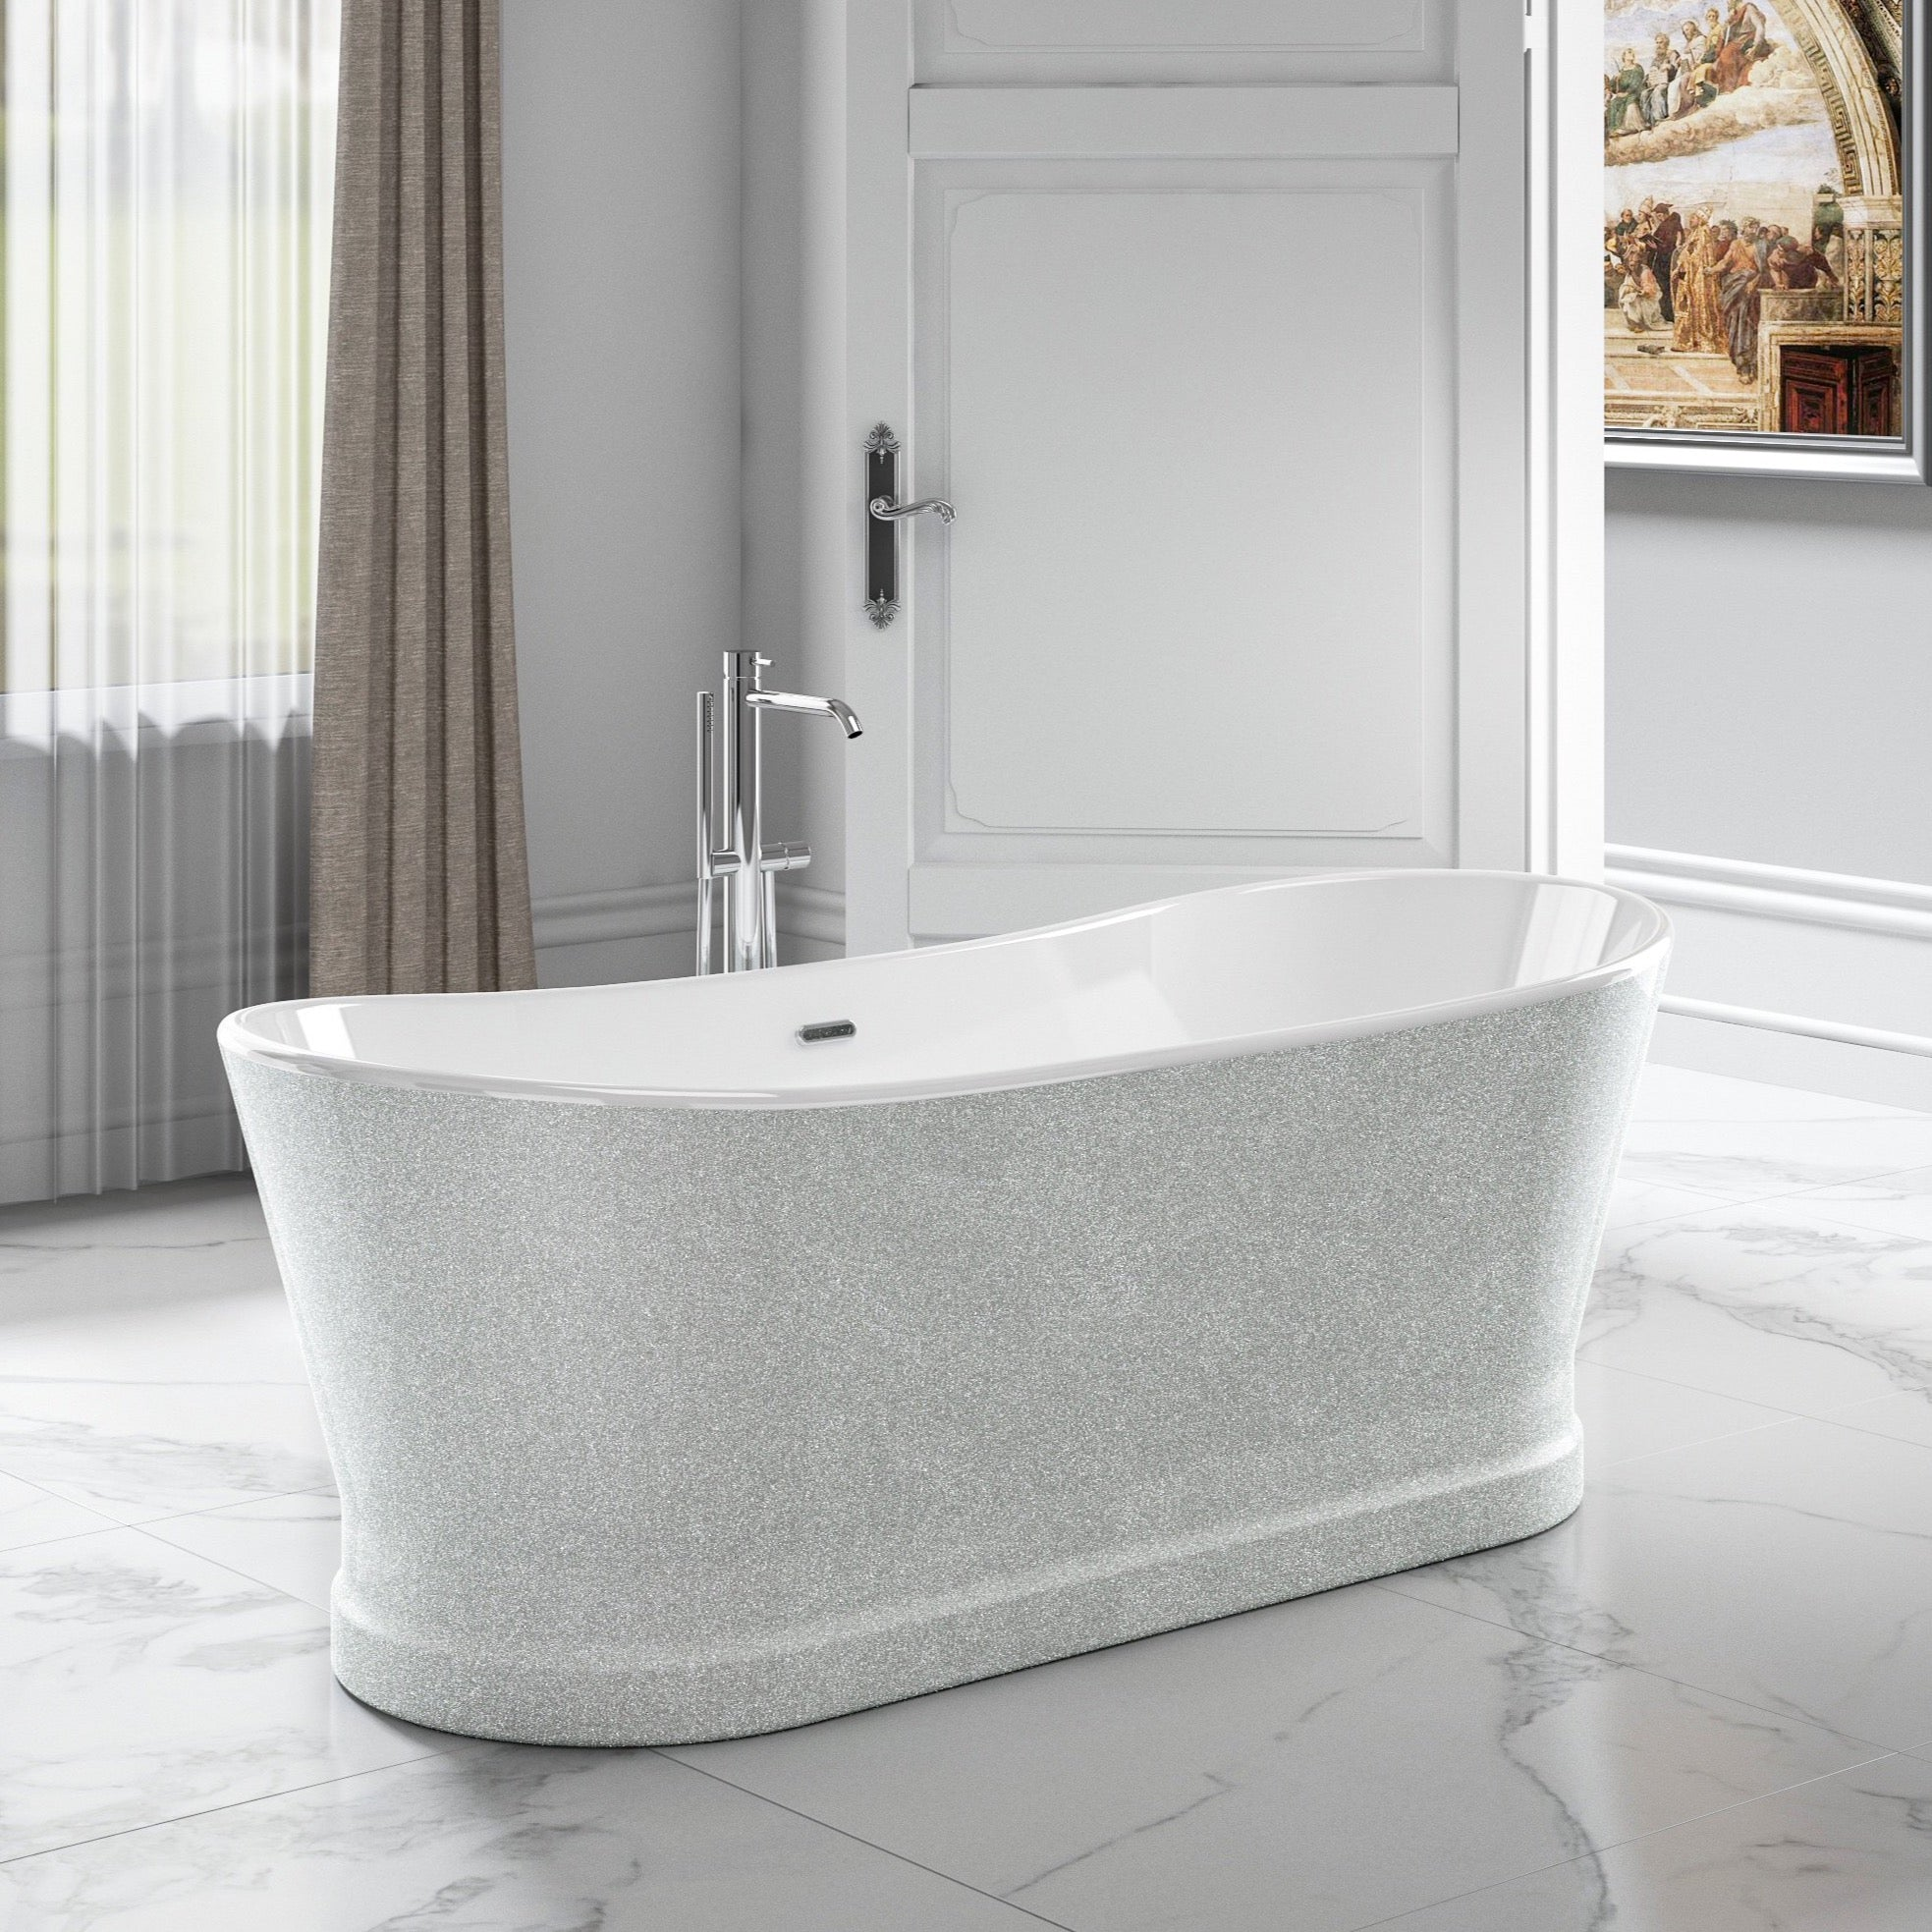 Charlotte Edwards Sparkling Silver Jupiter 1700mm Freestanding Bath